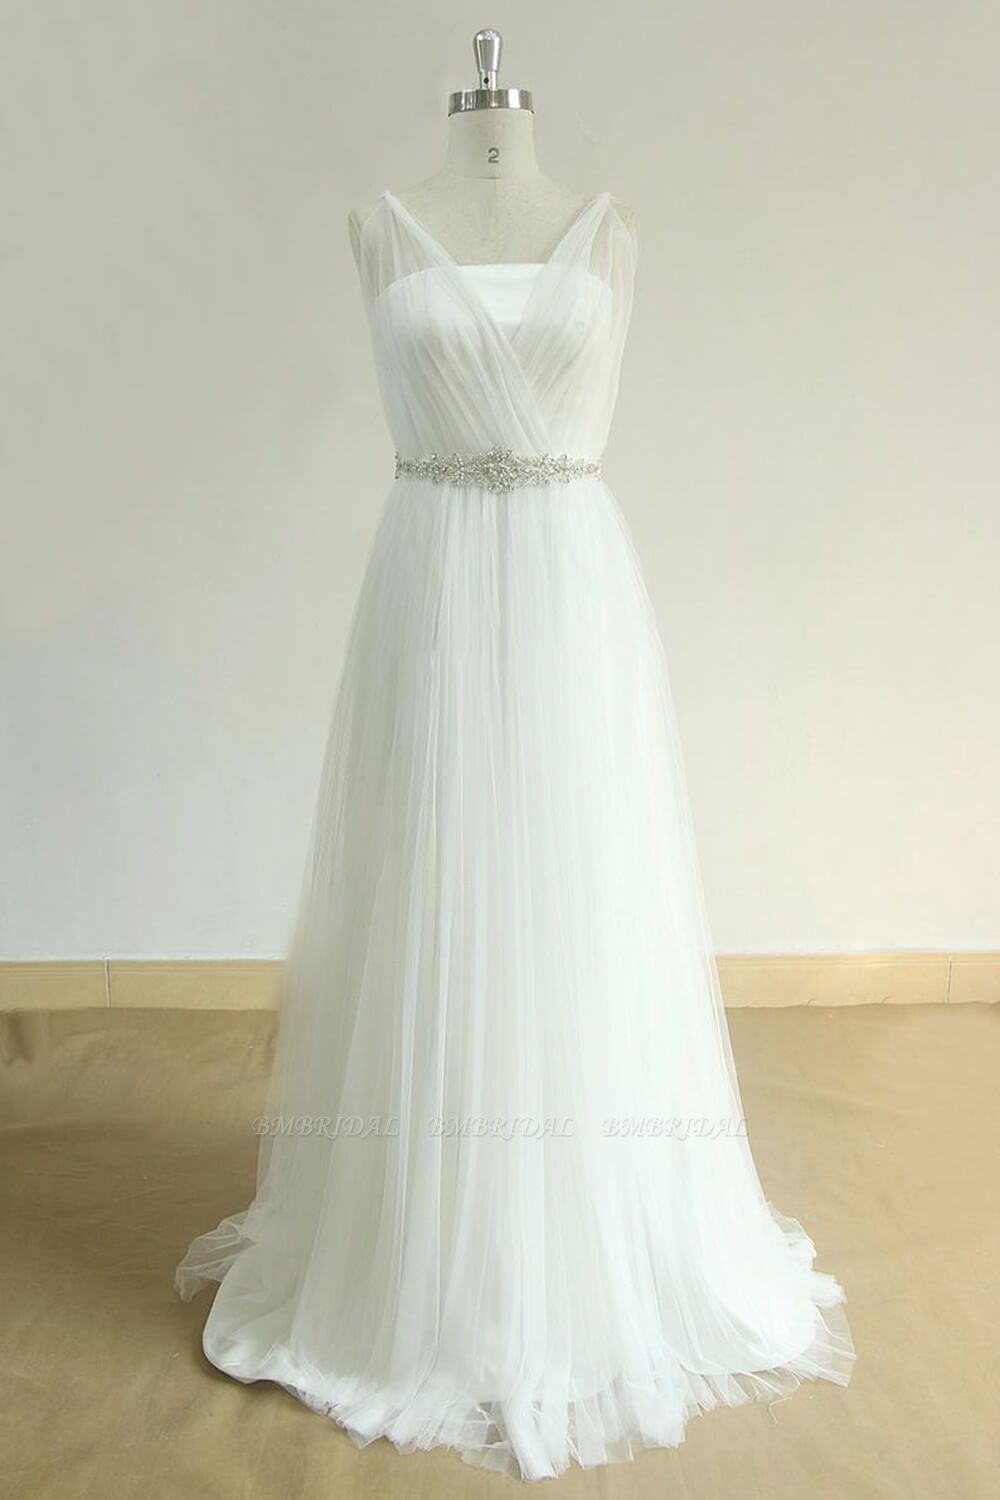 BMbridal Elegant Straps Tulle White Wedding Dress A-line Ruffles Sleeveless Bridal Gowns On Sale